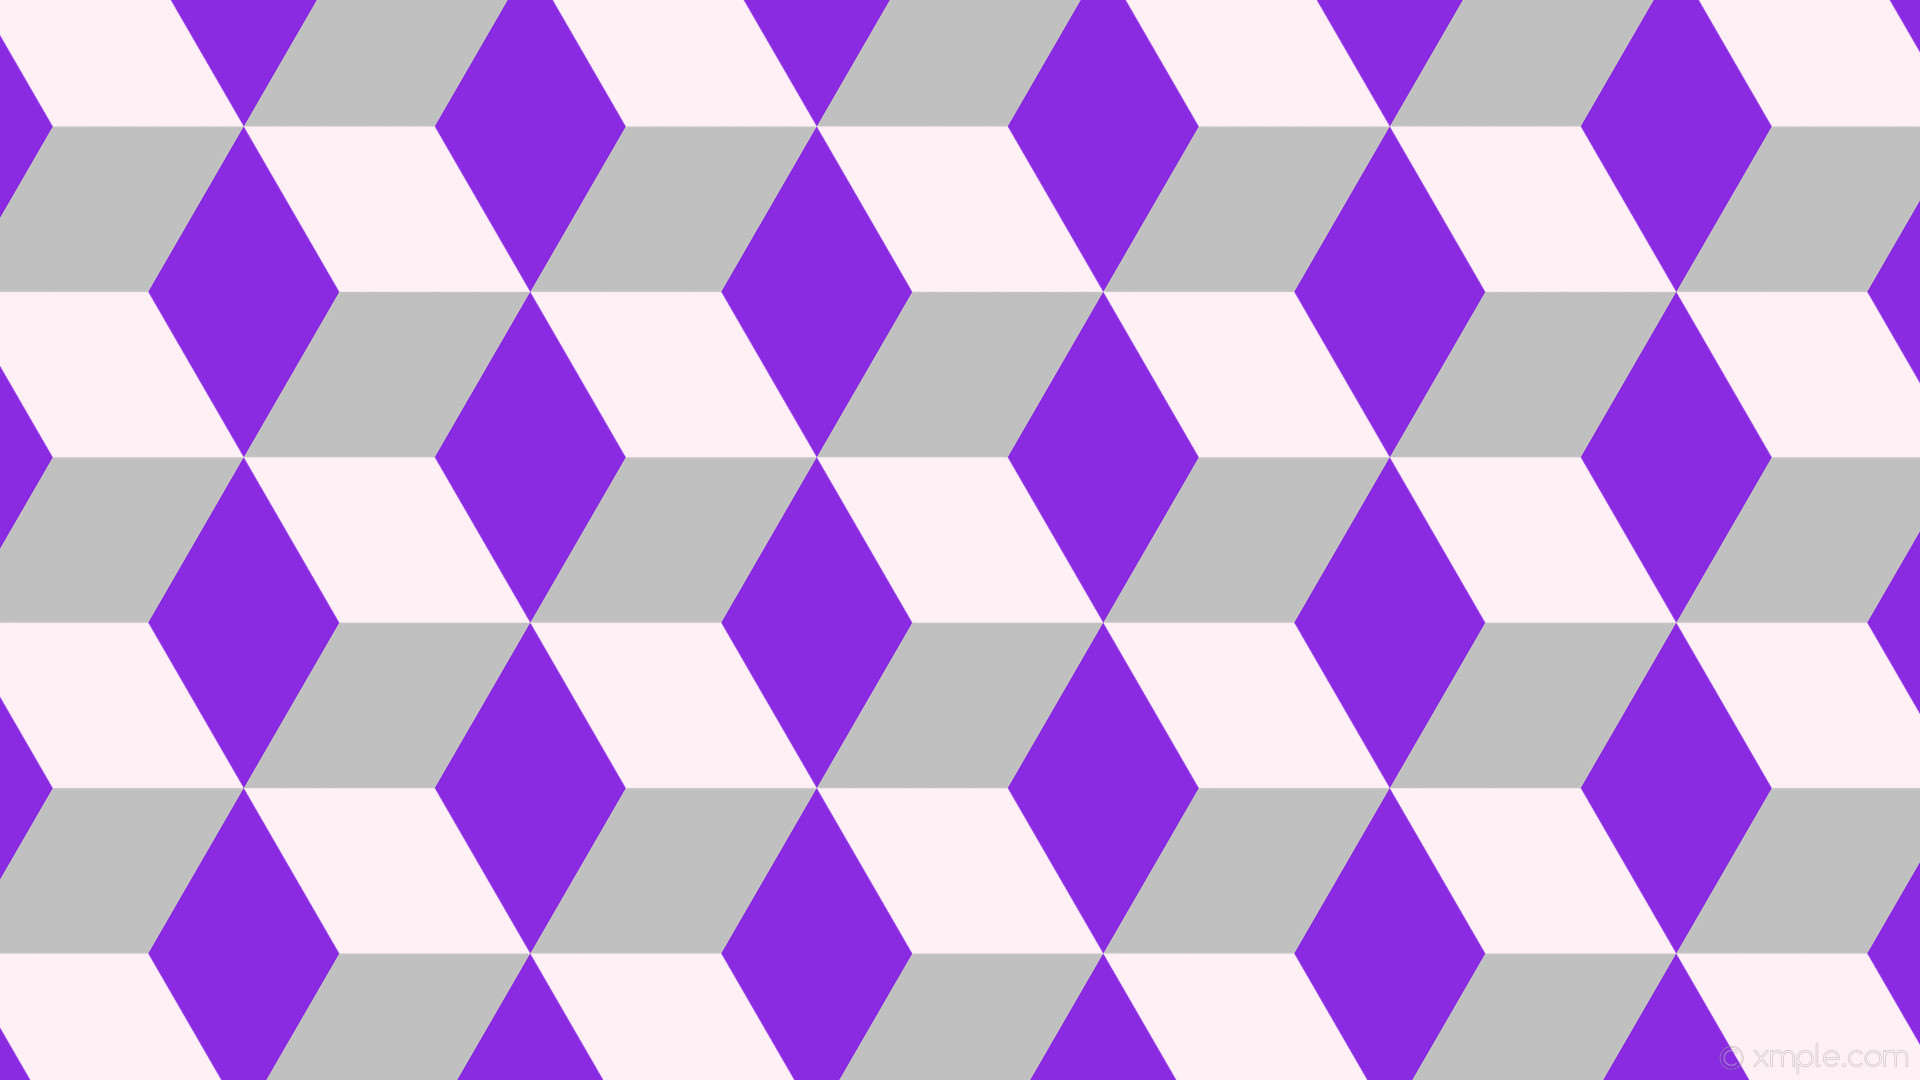 1920x1080 wallpaper purple 3d cubes grey white lavender blush blue violet silver  #fff0f5 #8a2be2 #